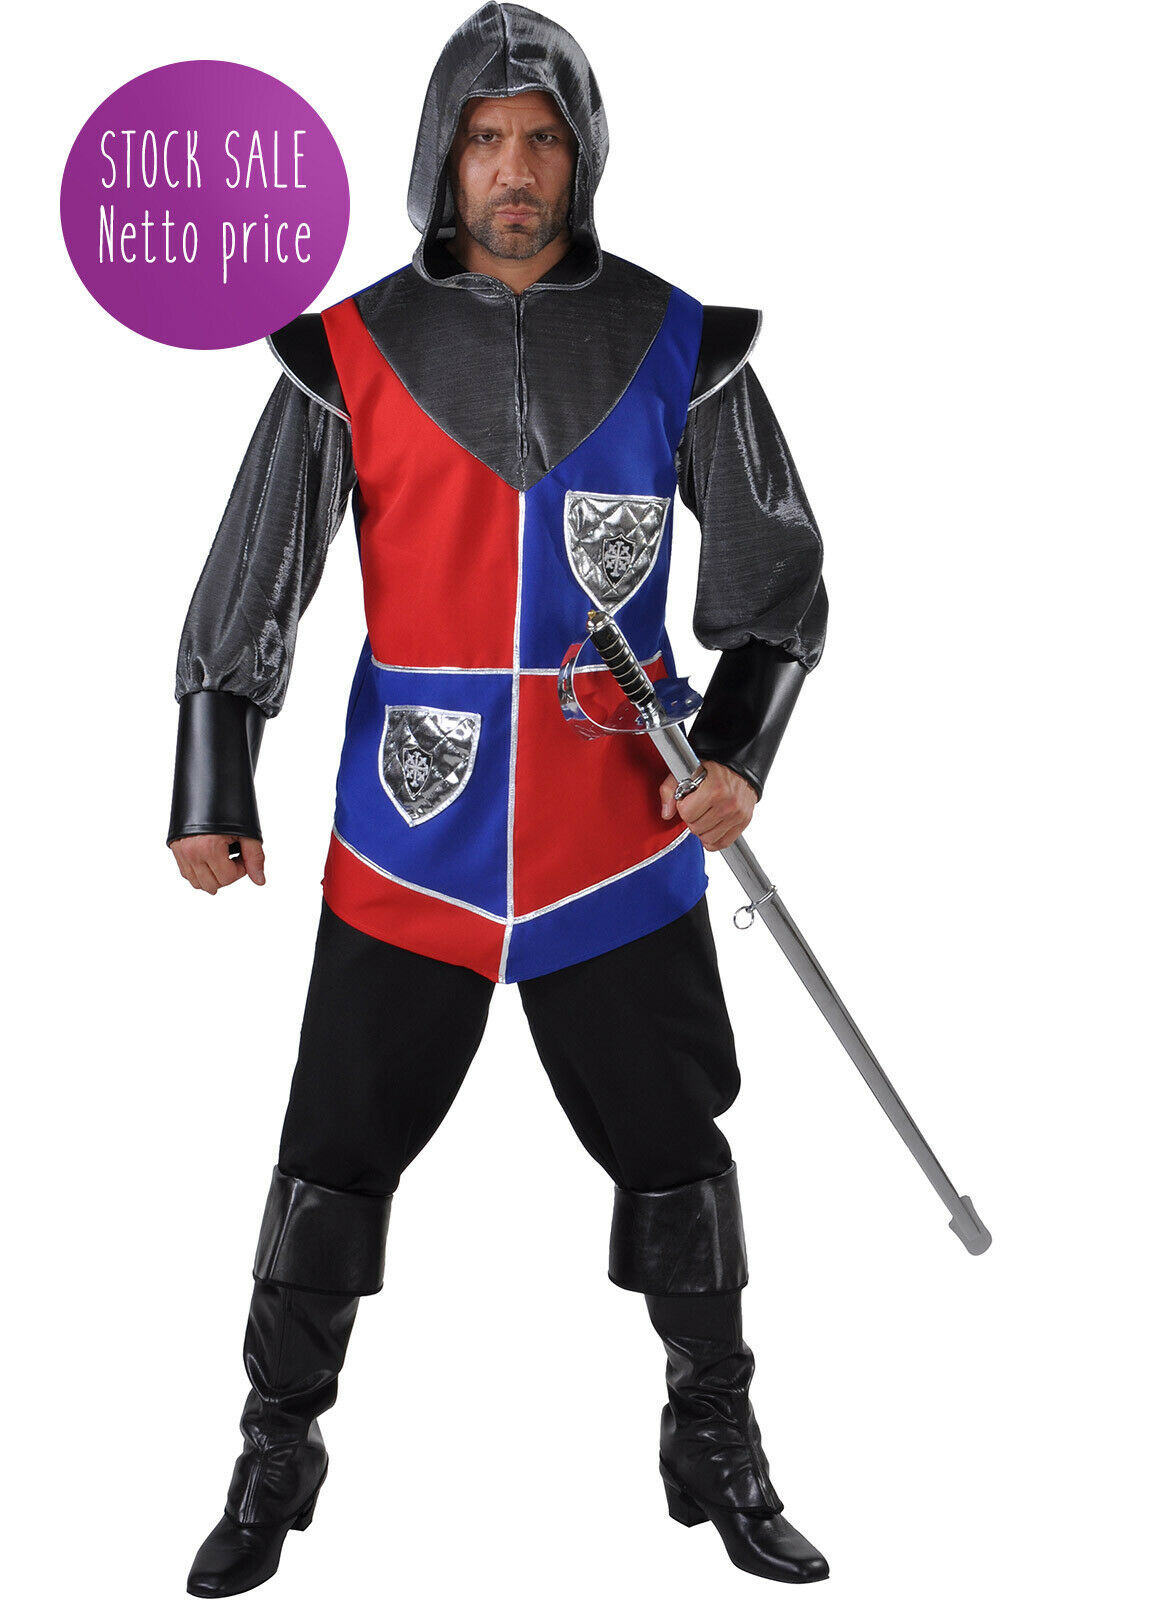 Medieval Knight Costume - Small